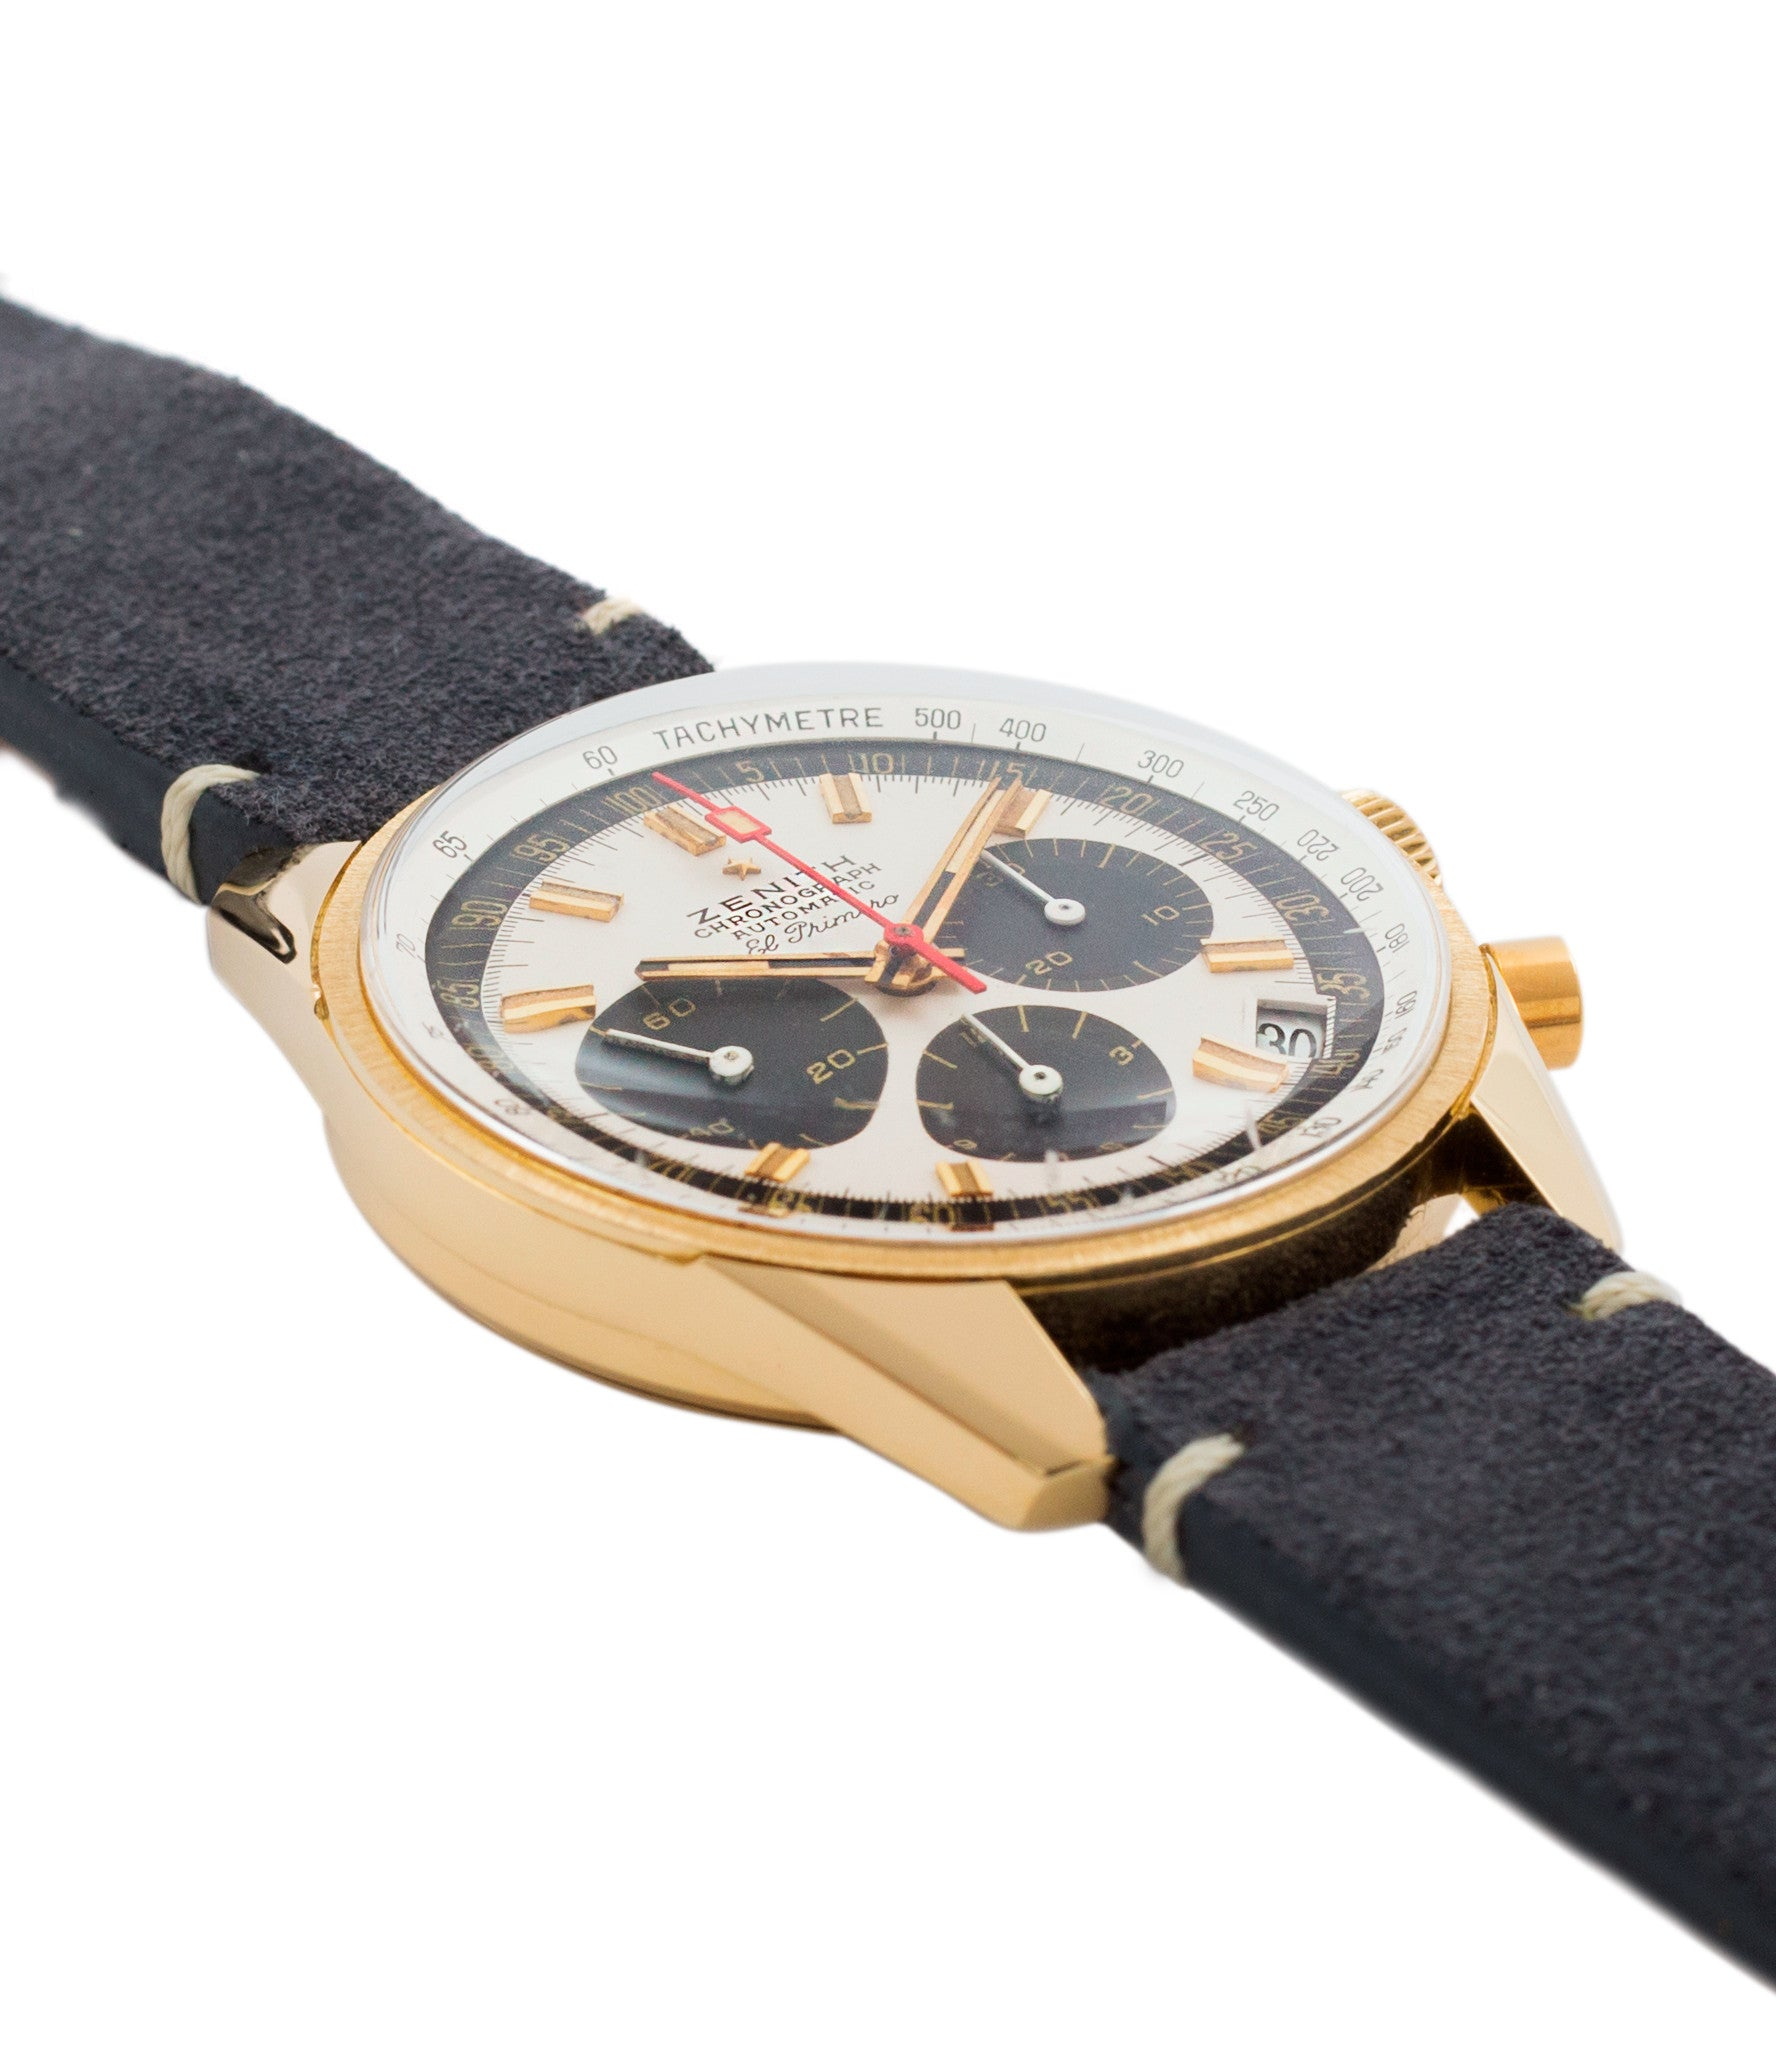 for sale Zenith El Primero G381 rare yellow gold vintage chronograph date watch for sale online at A Collected Man London vintage watch specialist